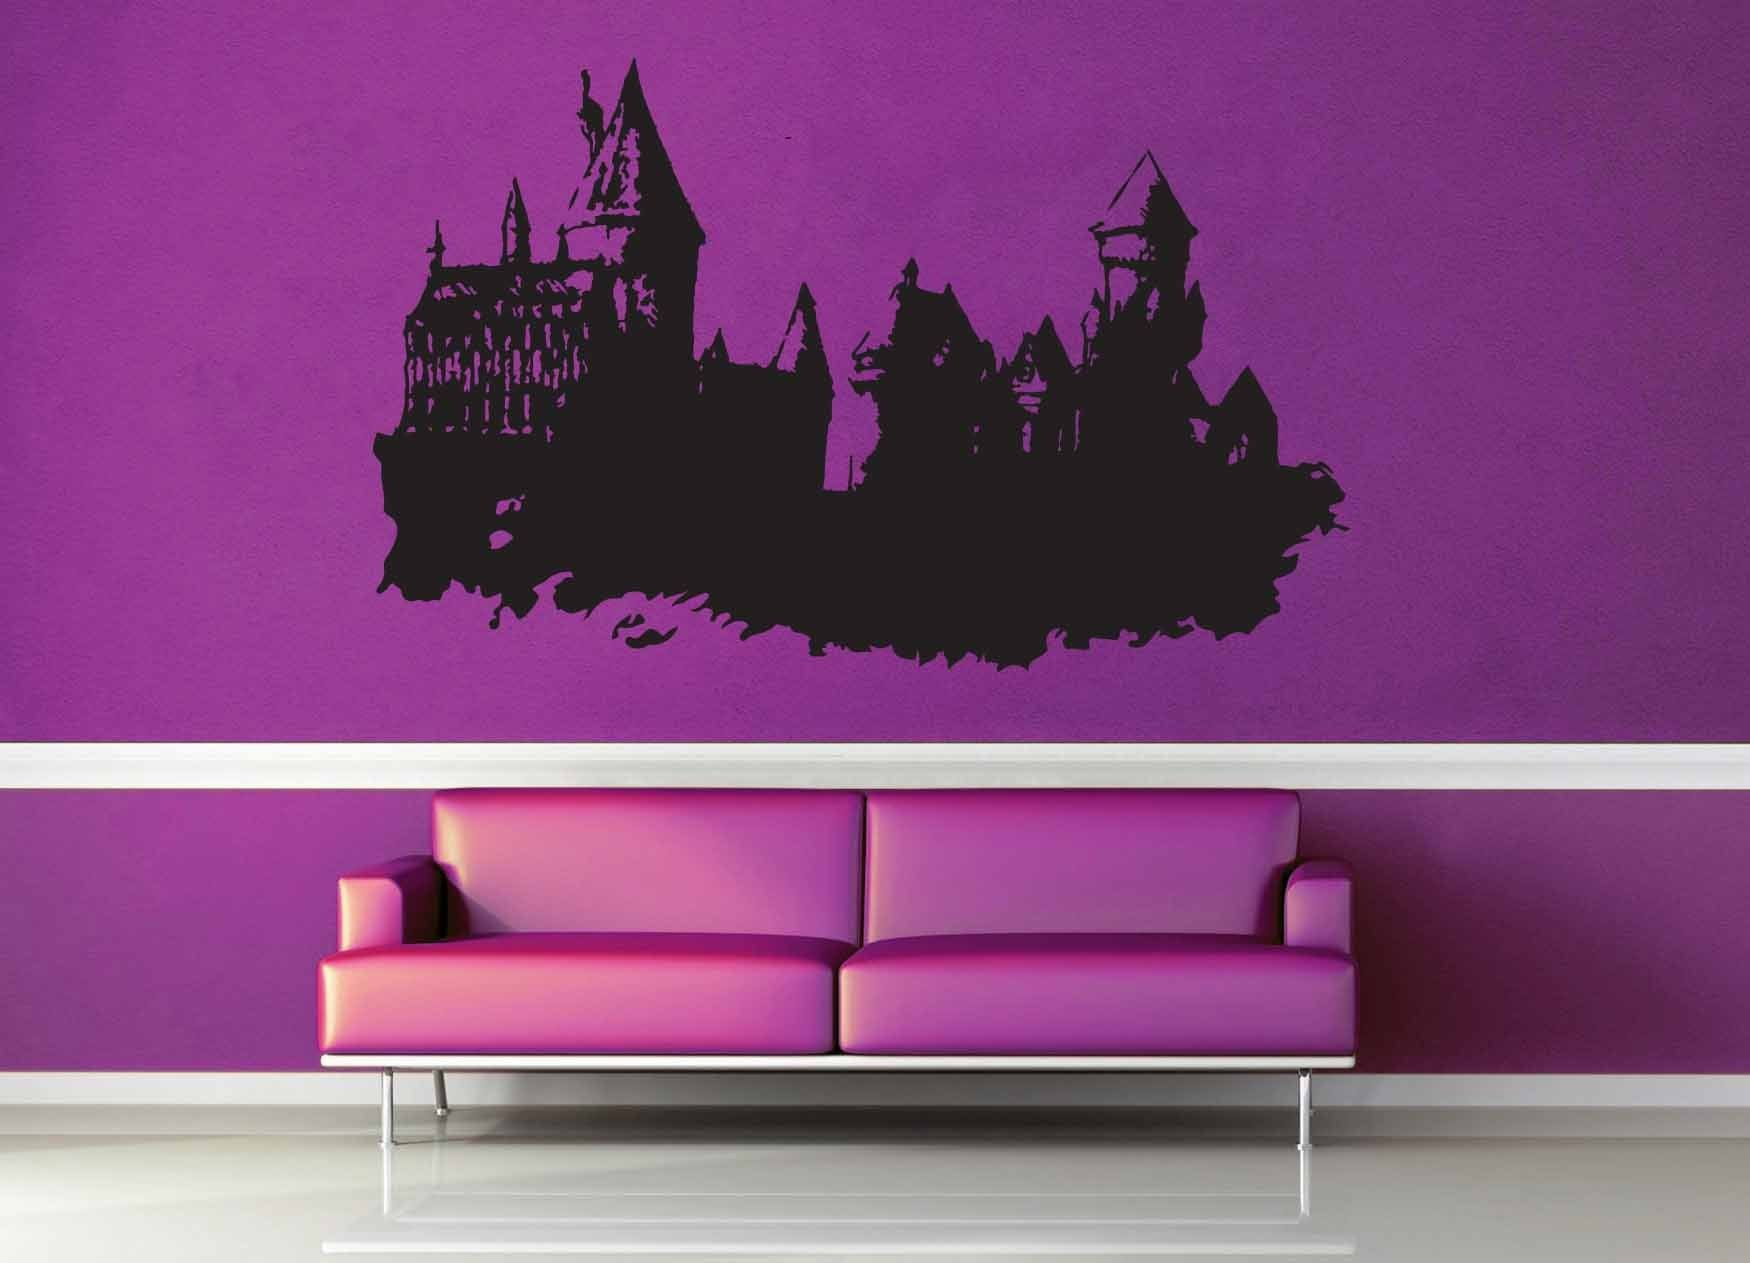 Harry potter hogwarts castle wall decal harry potter for Castle wall mural sticker